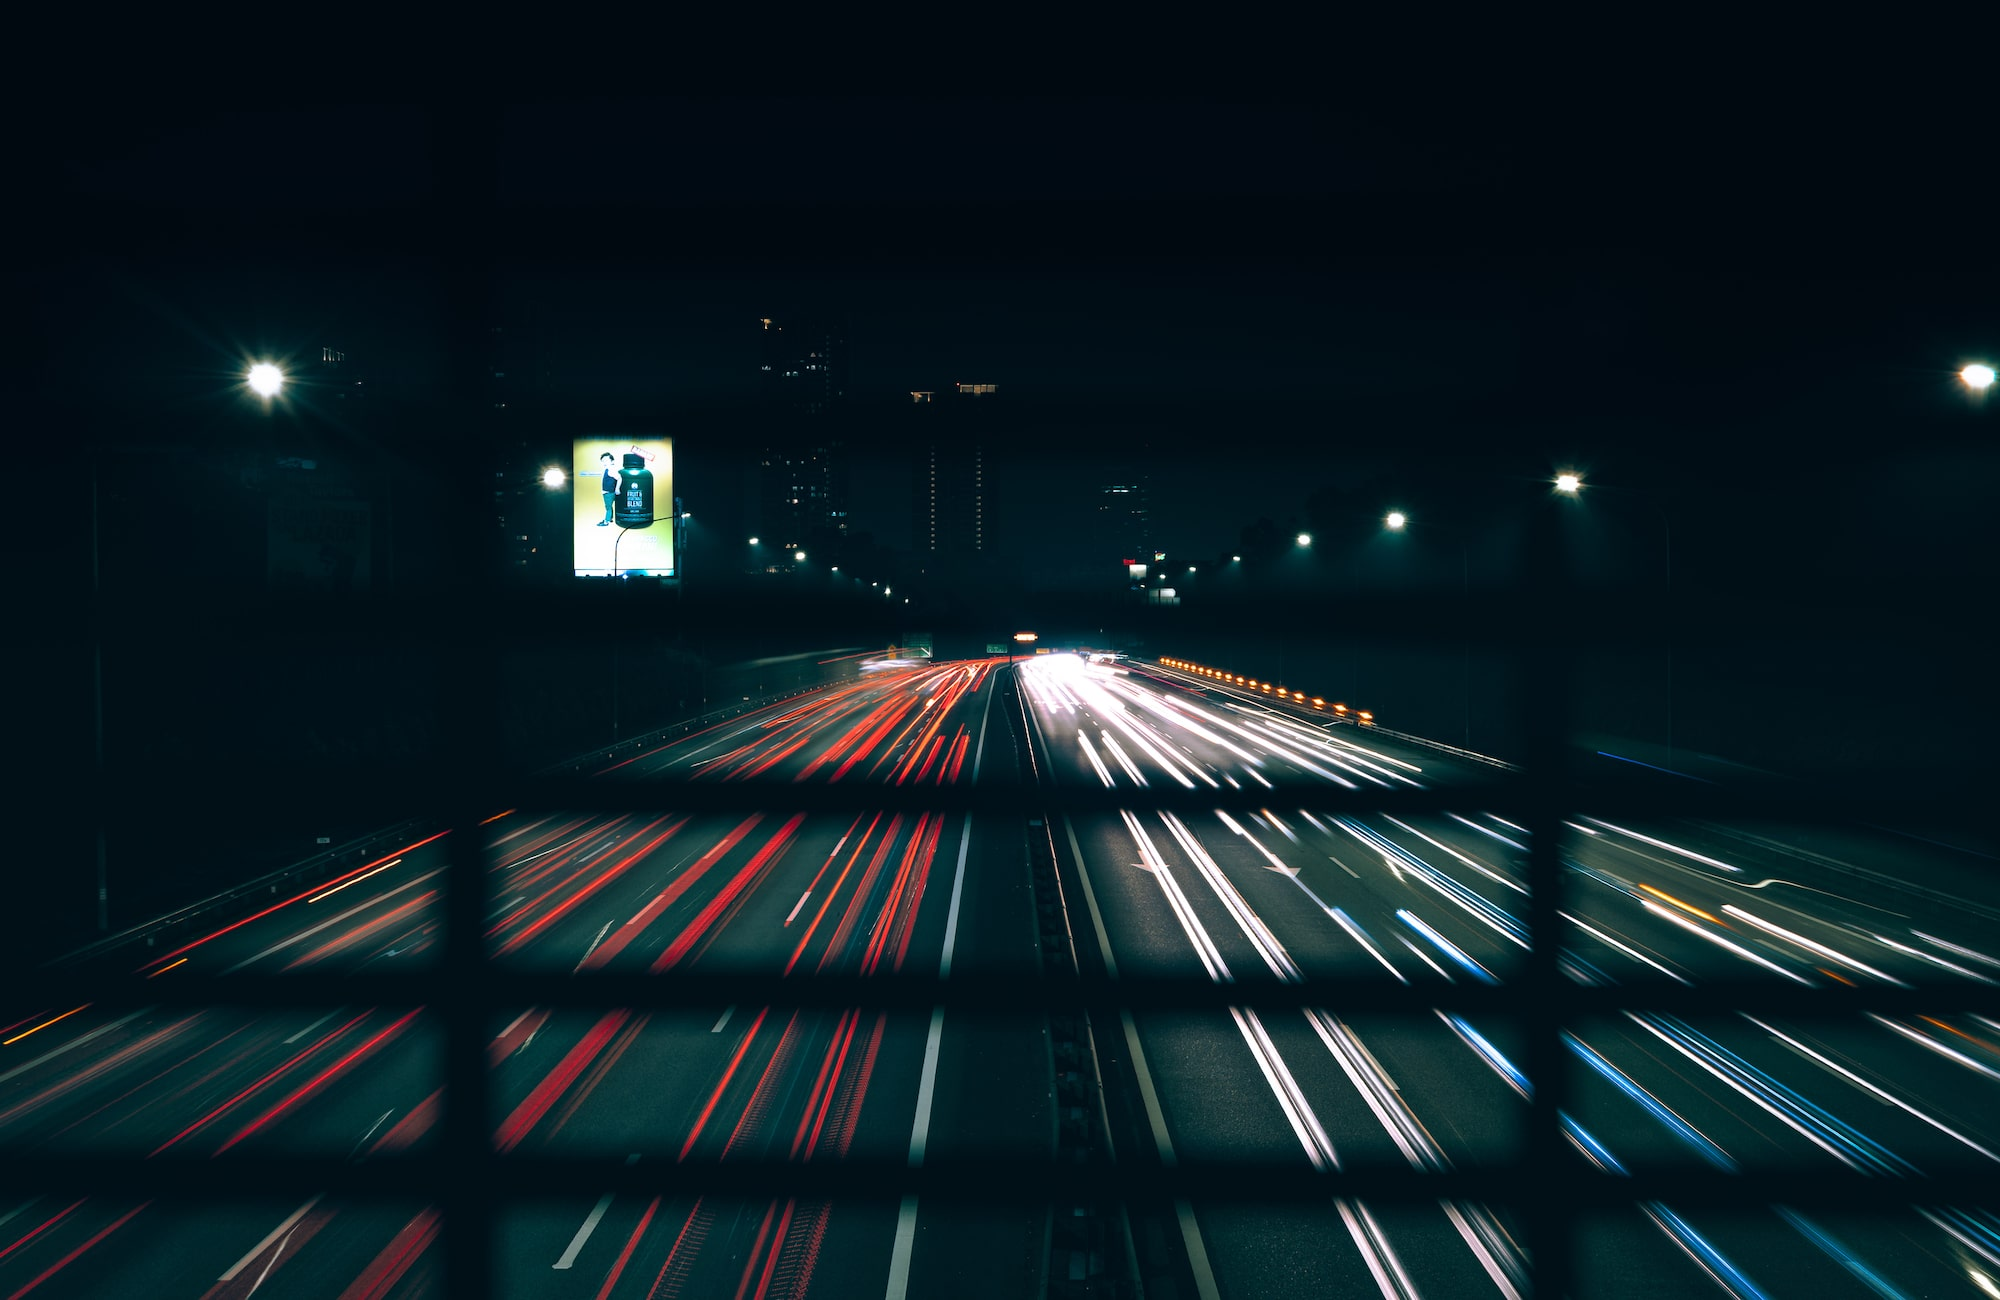 Capture beautiful light trail shots with Sony α7 III.